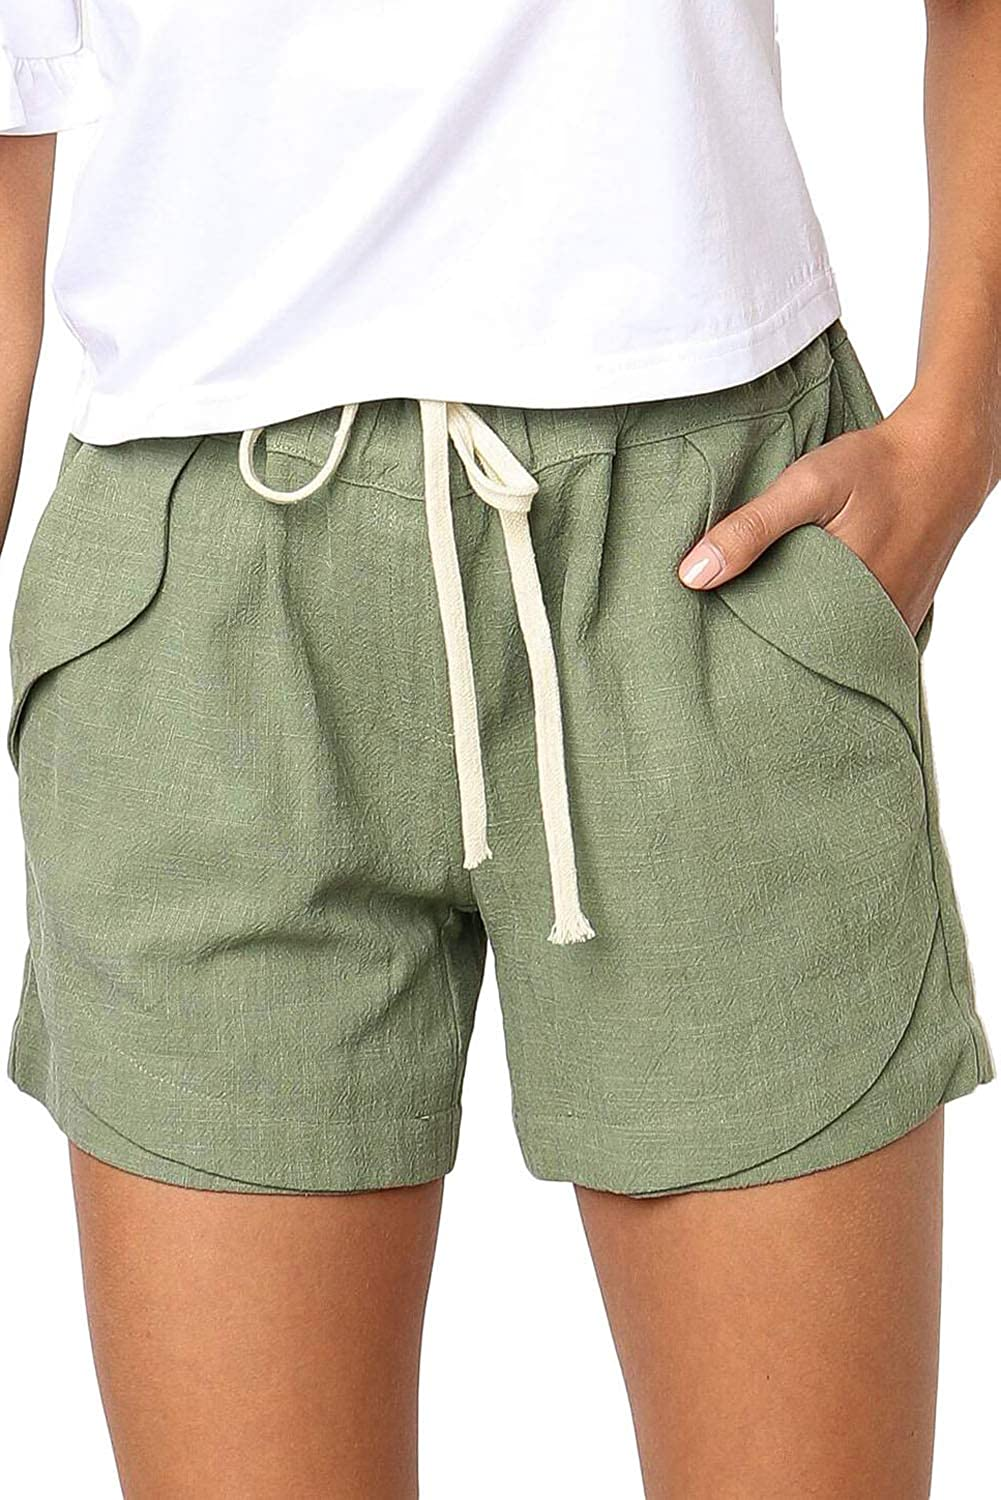 SWEET POISON Womens Harem Shorts with Pockets Casual Baggy Wide Leg Comfy Short